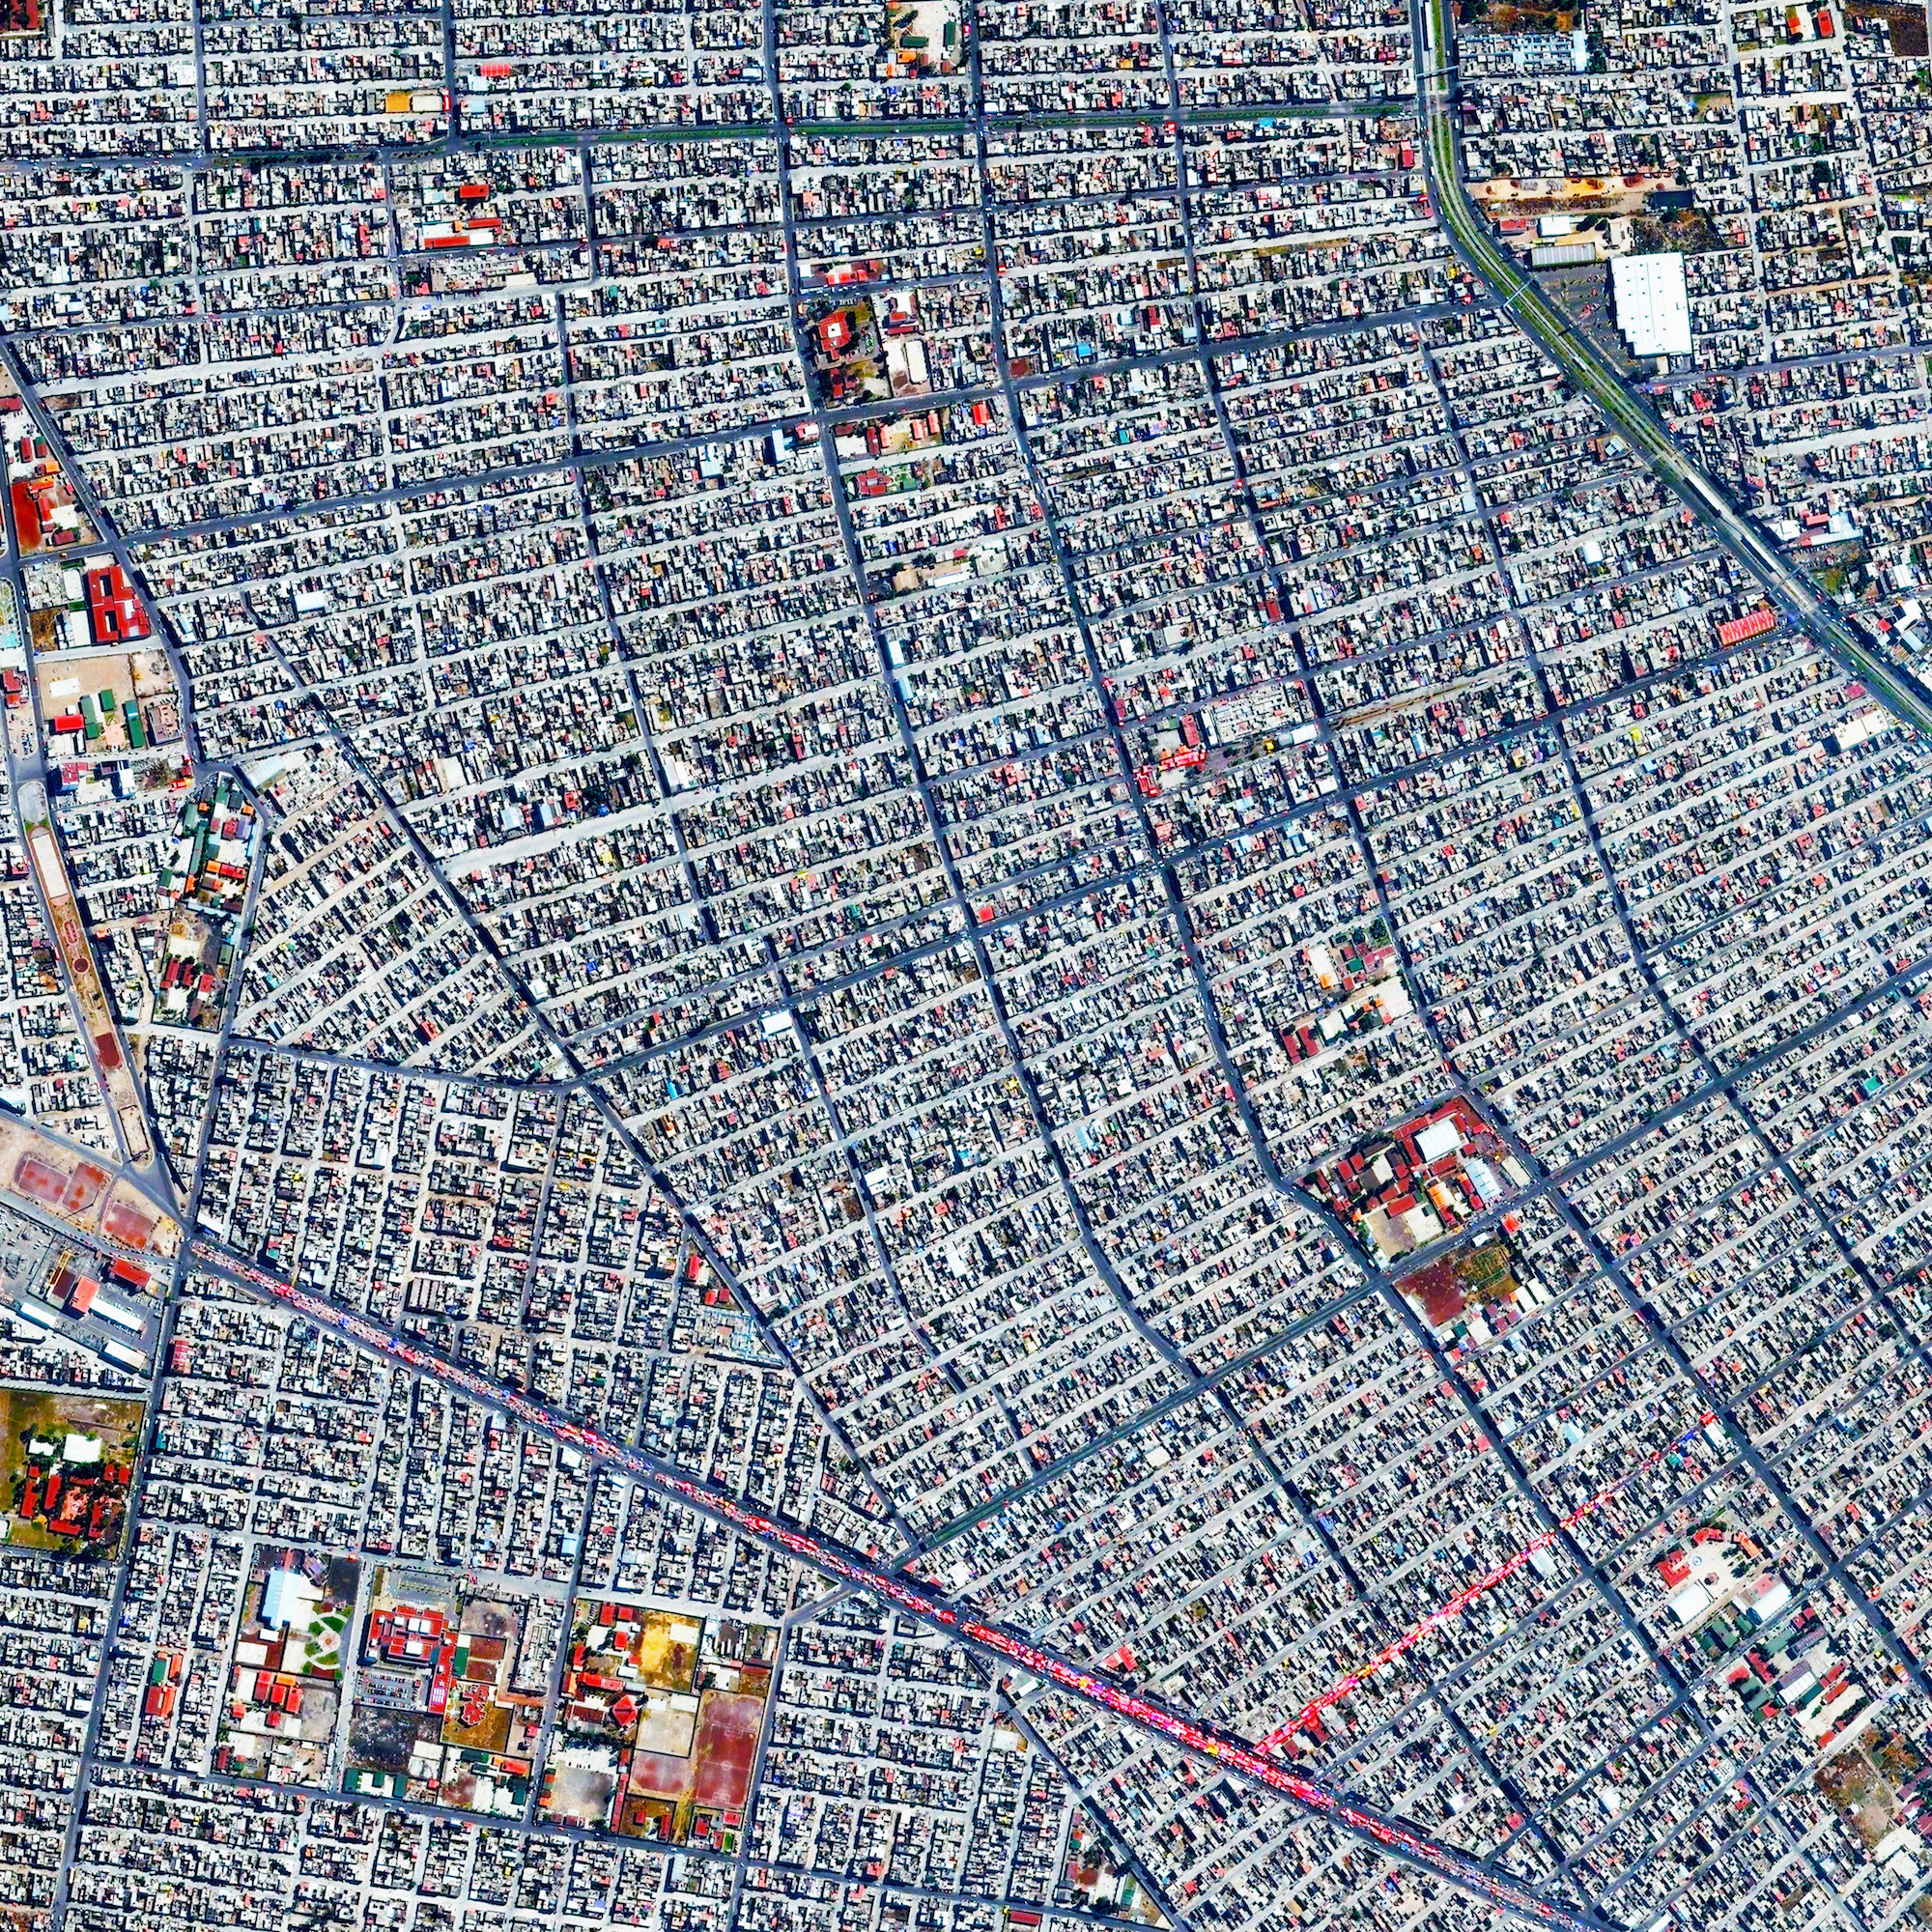 11/4/2015   Chimalhuacán   Chimalhuacán, Mexico  19.435062776°, -98.968516816°    Chimalhuacán is a city with more than 600,000 residents in the eastern part of the State of Mexico, Mexico. The colorful strip seen across the bottom of this Overview is a open-air market known as a tianguis. Here, merchants cover their stalls with vibrant canopies to protect themselves from harsh sun and inclement weather.